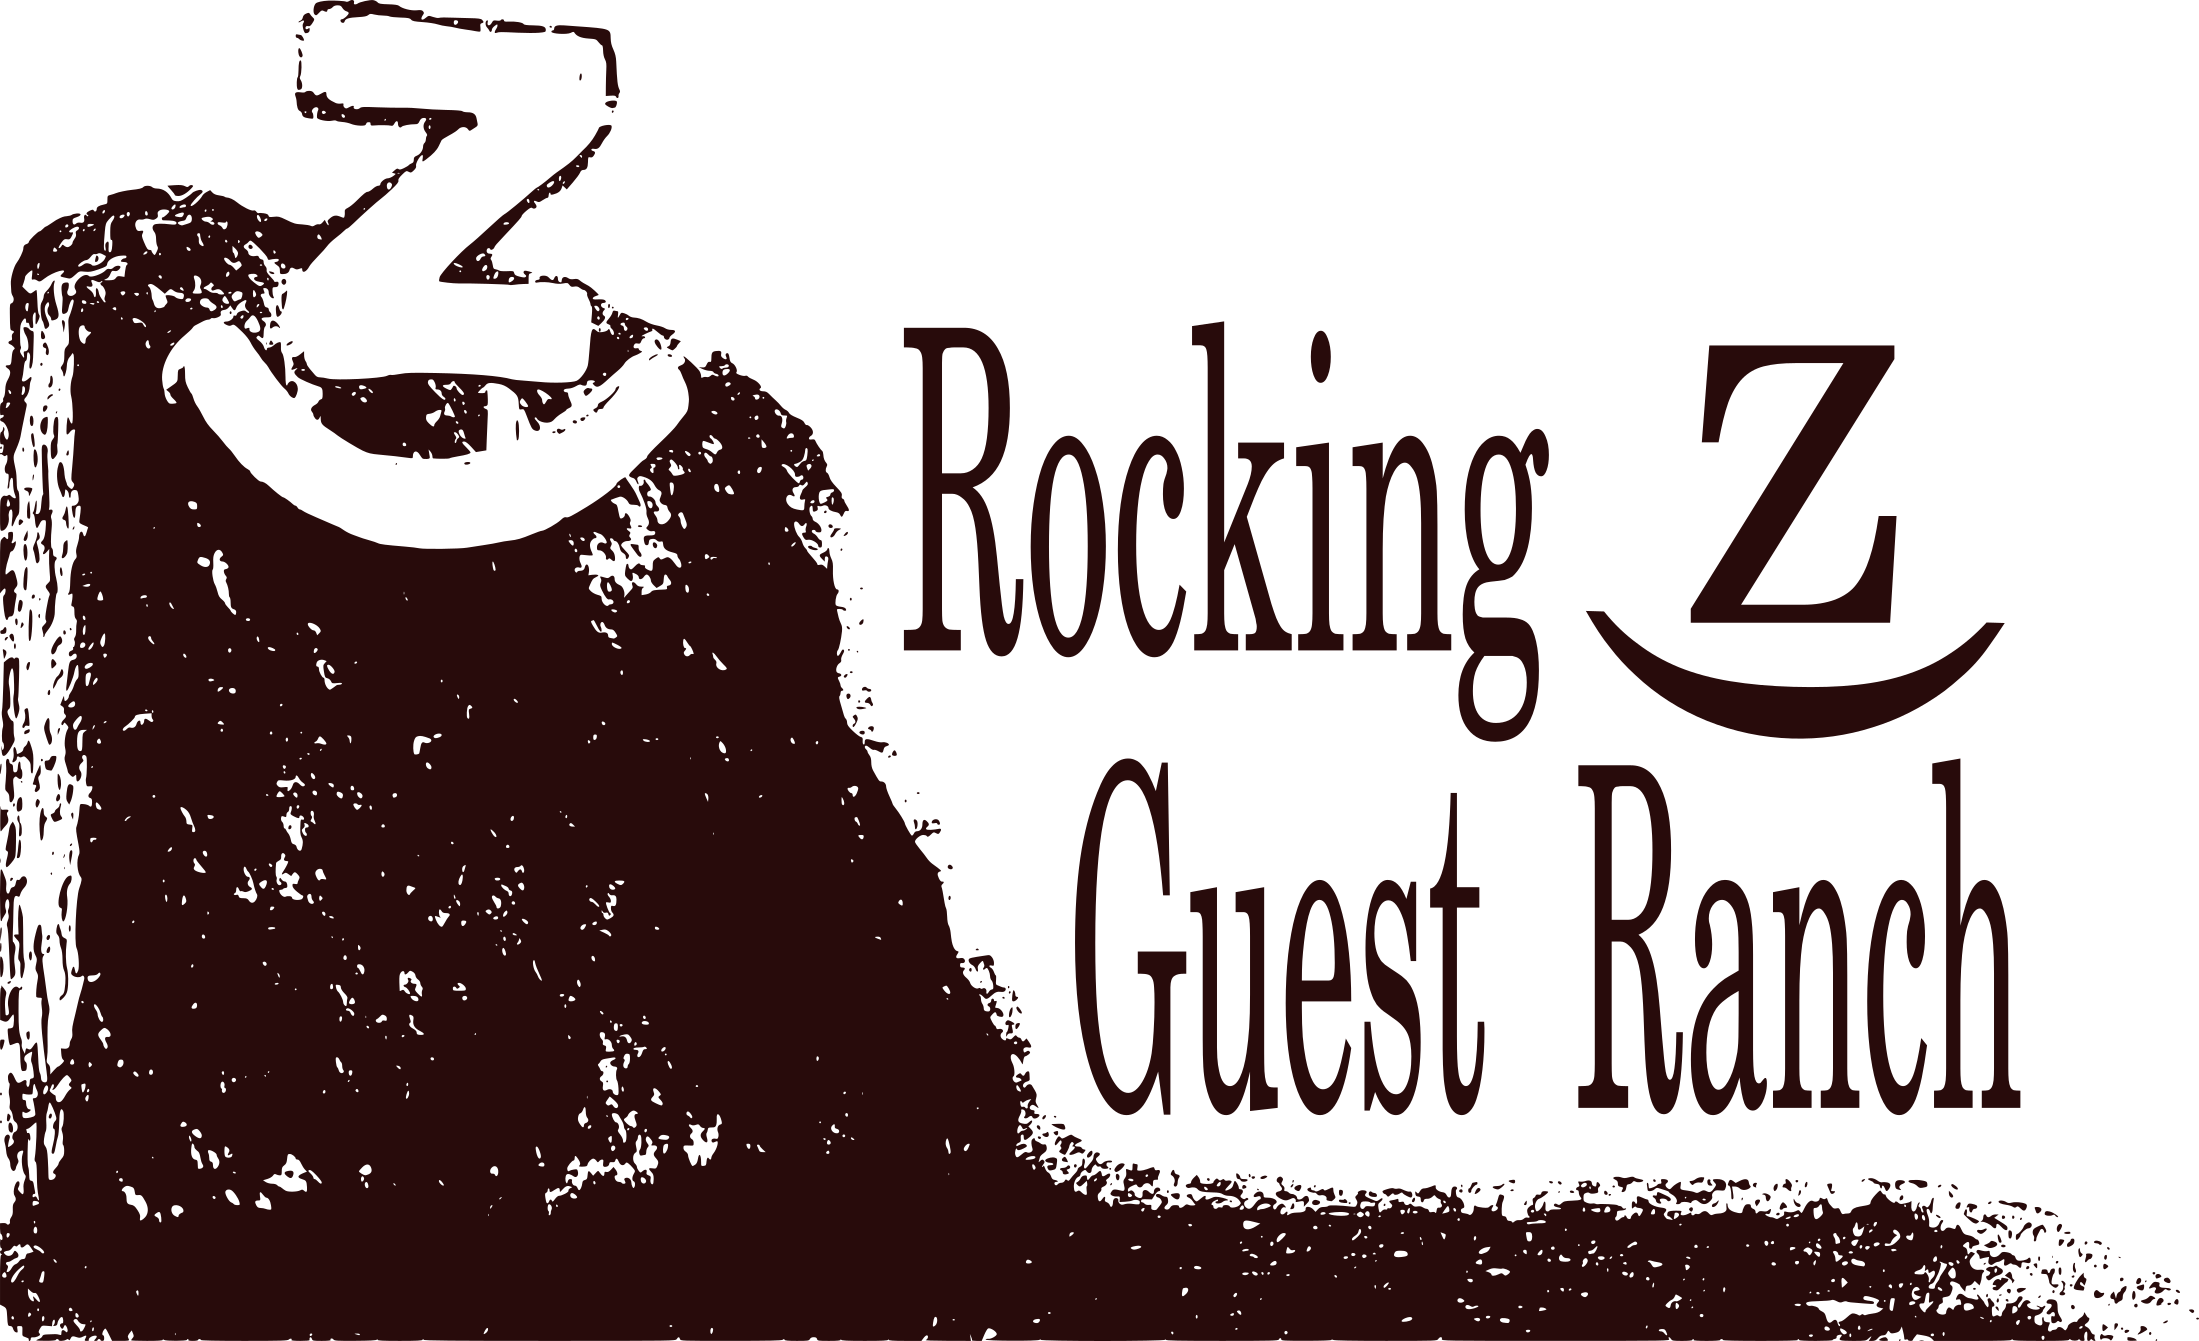 rockingzguestranchlogo